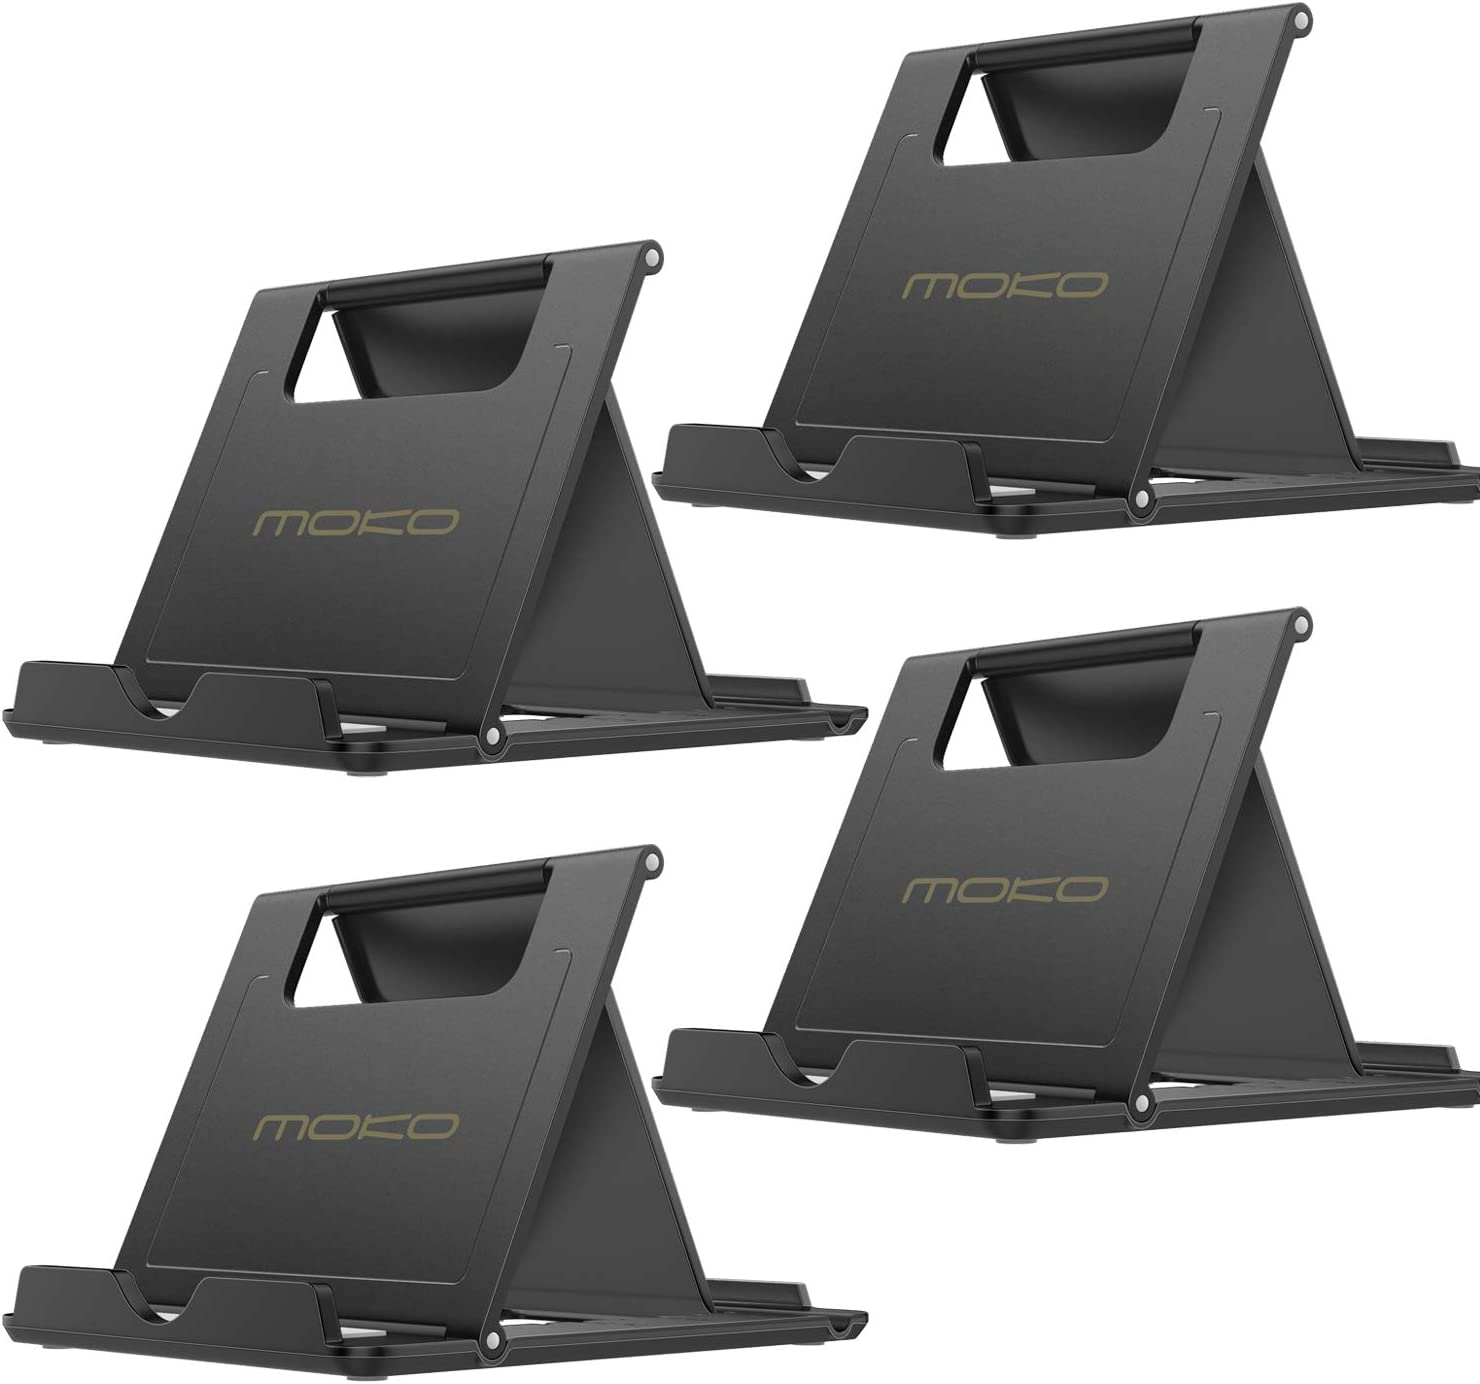 //Air 3//Air 4 10.9//Mini 5 2 Pack Phone//Tablet Stand, Foldable Desktop Holder for 4-11 Devices, Fit iPhone 11 Pro Max//11// Xs Max//SE, iPad Pro 11//10.2 8th Gen MoKo Galaxy S20 Black